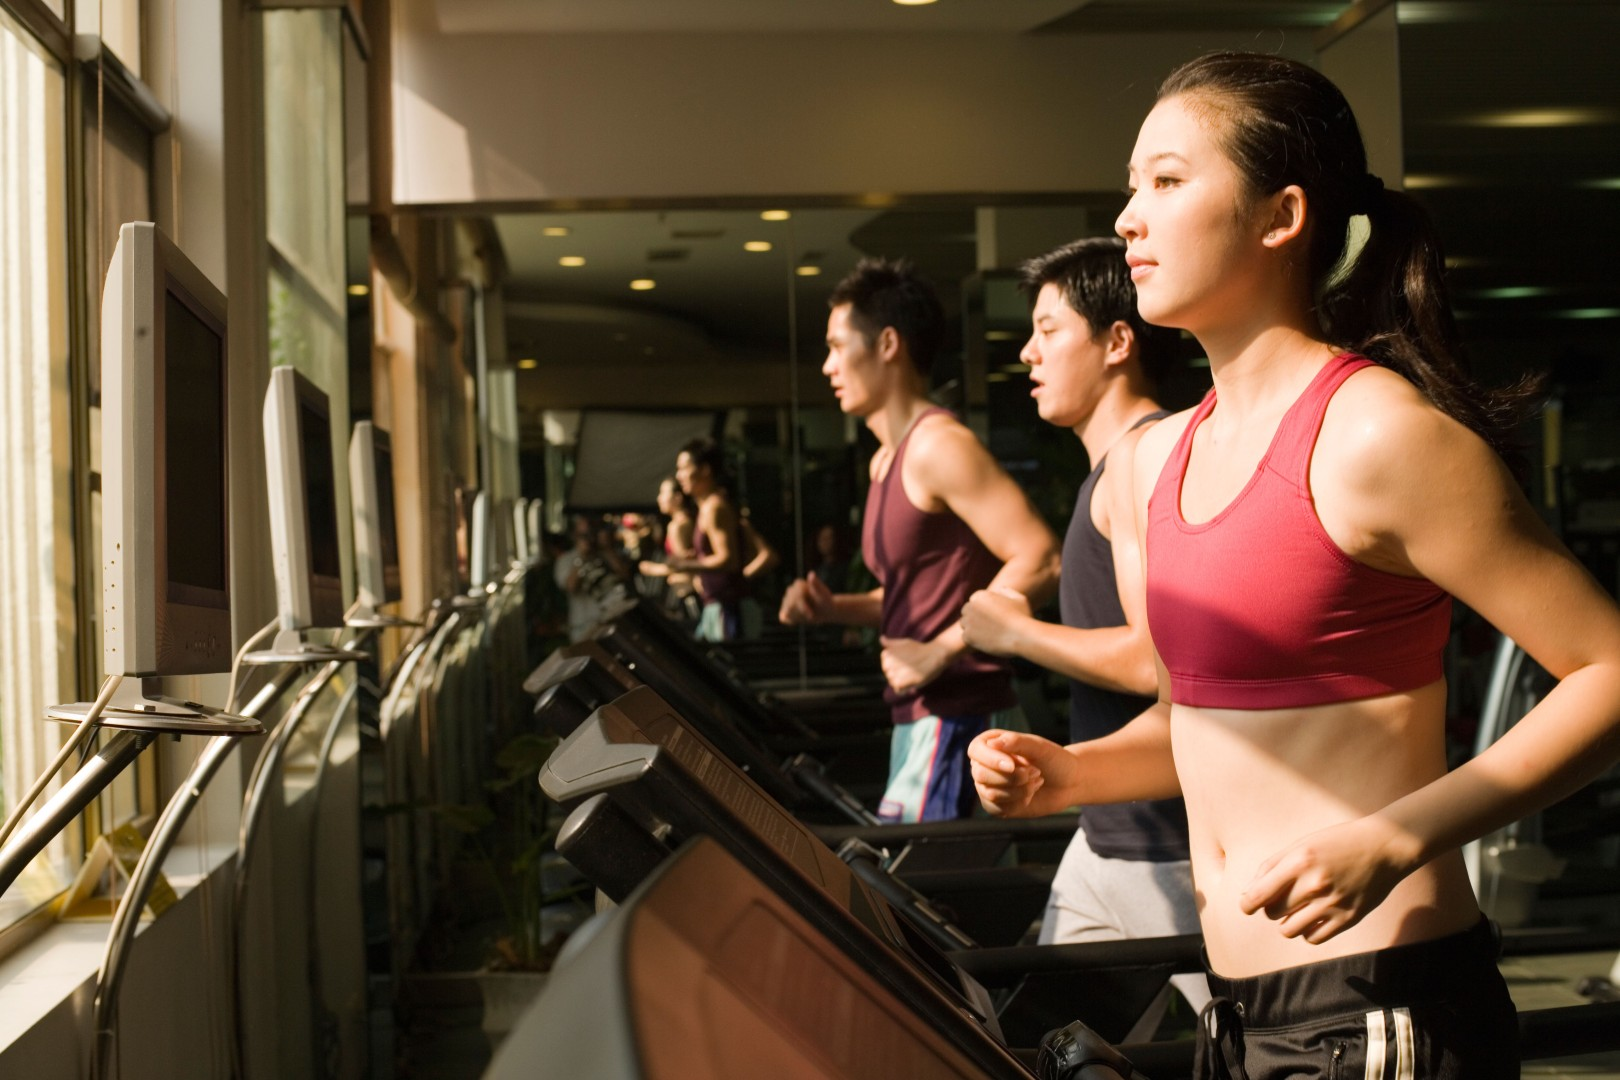 Ten top hong kong gym trainers to help you get fit fast and lose